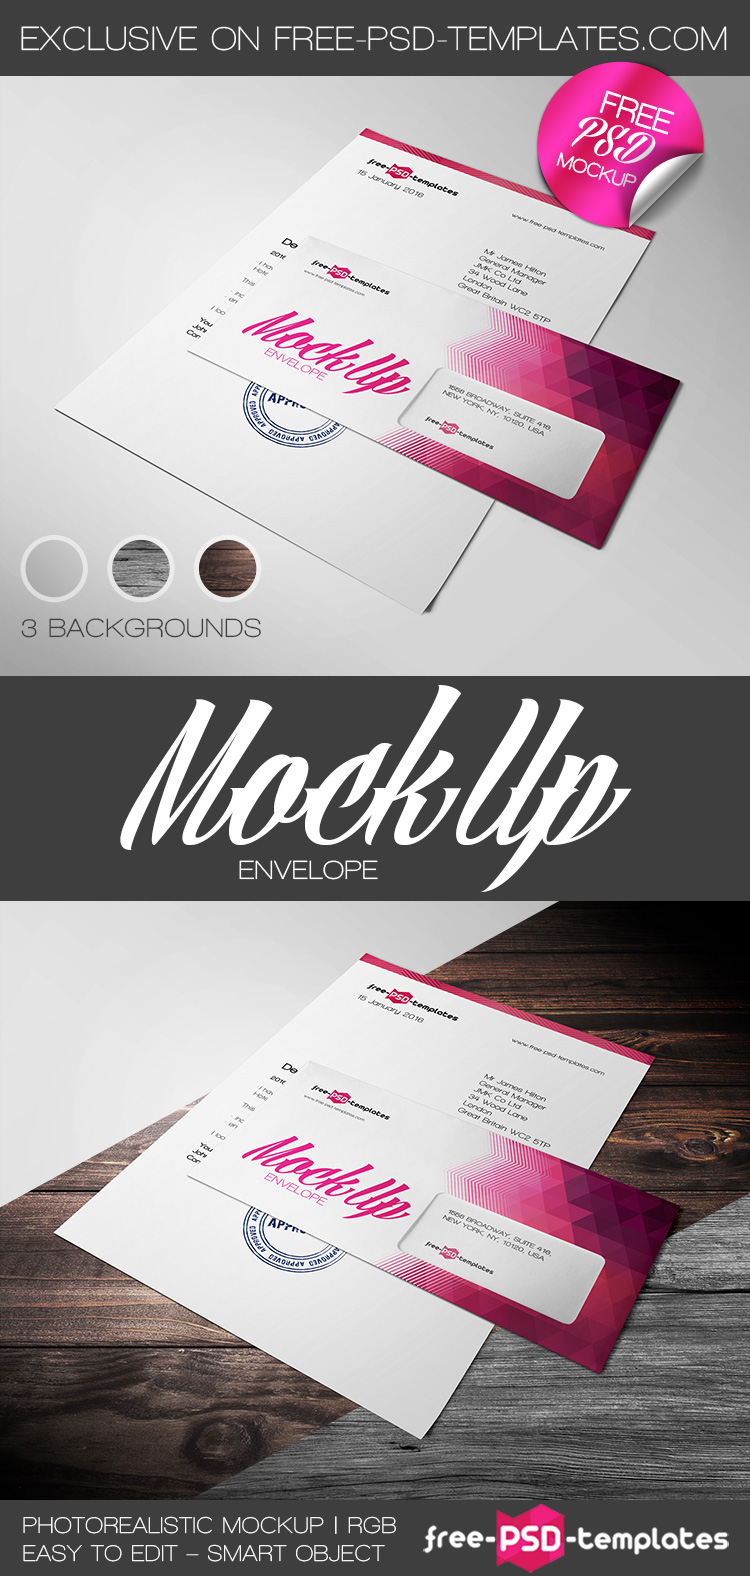 Bigpreview_free-envelope-mock-up-in-psd